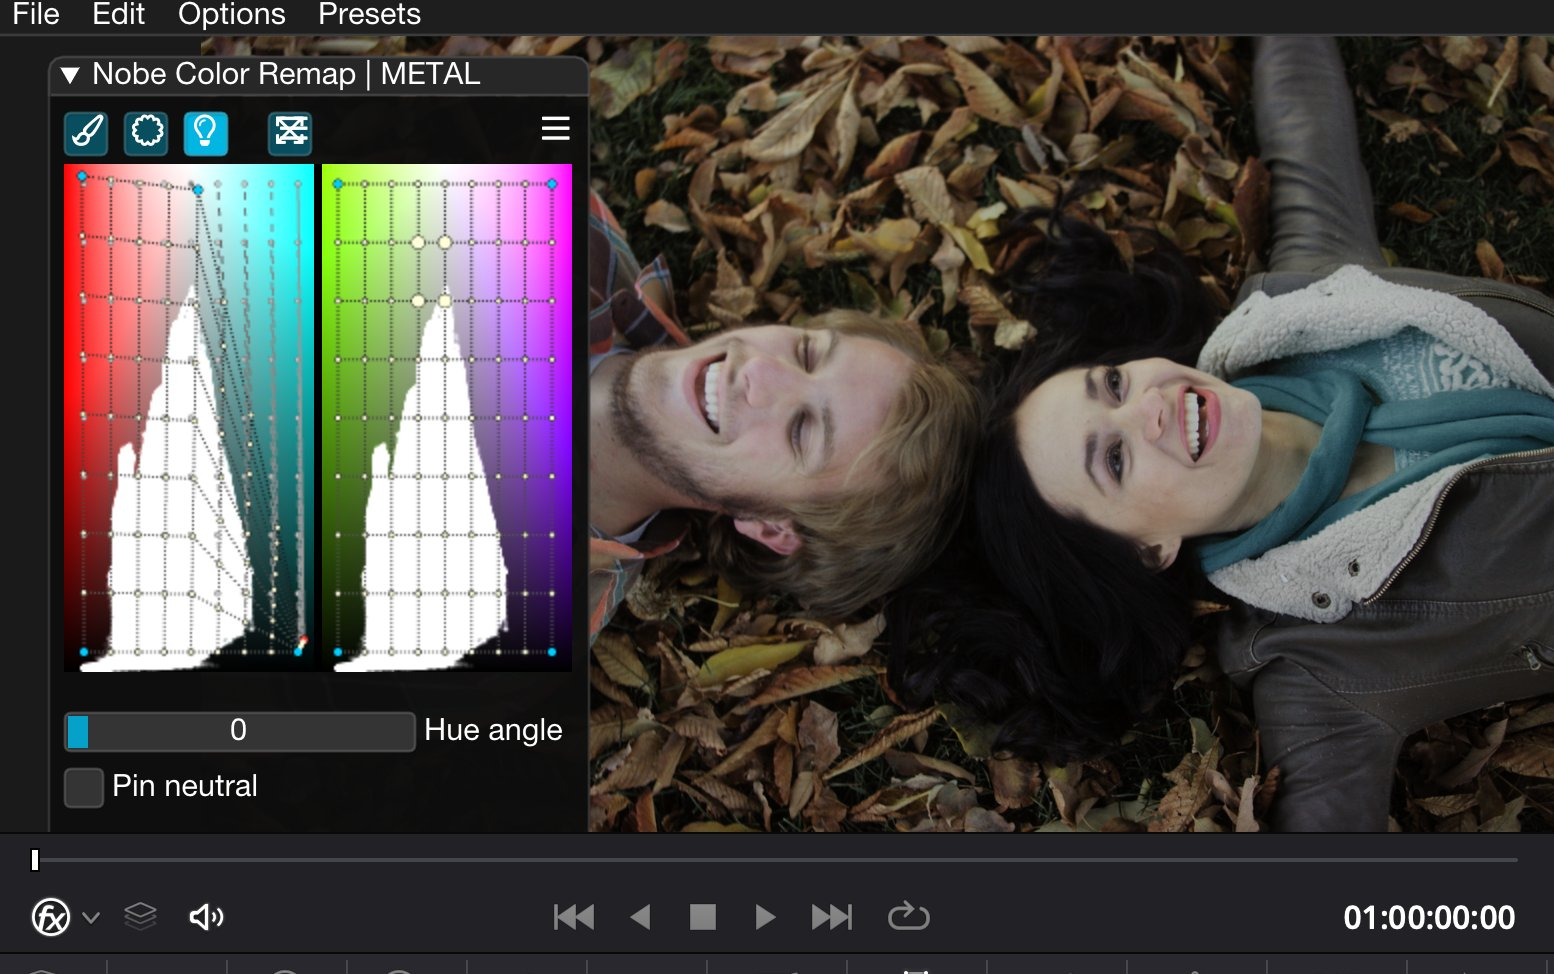 Nobe Color Remap for all your post-production tools. The original Color Warper 5